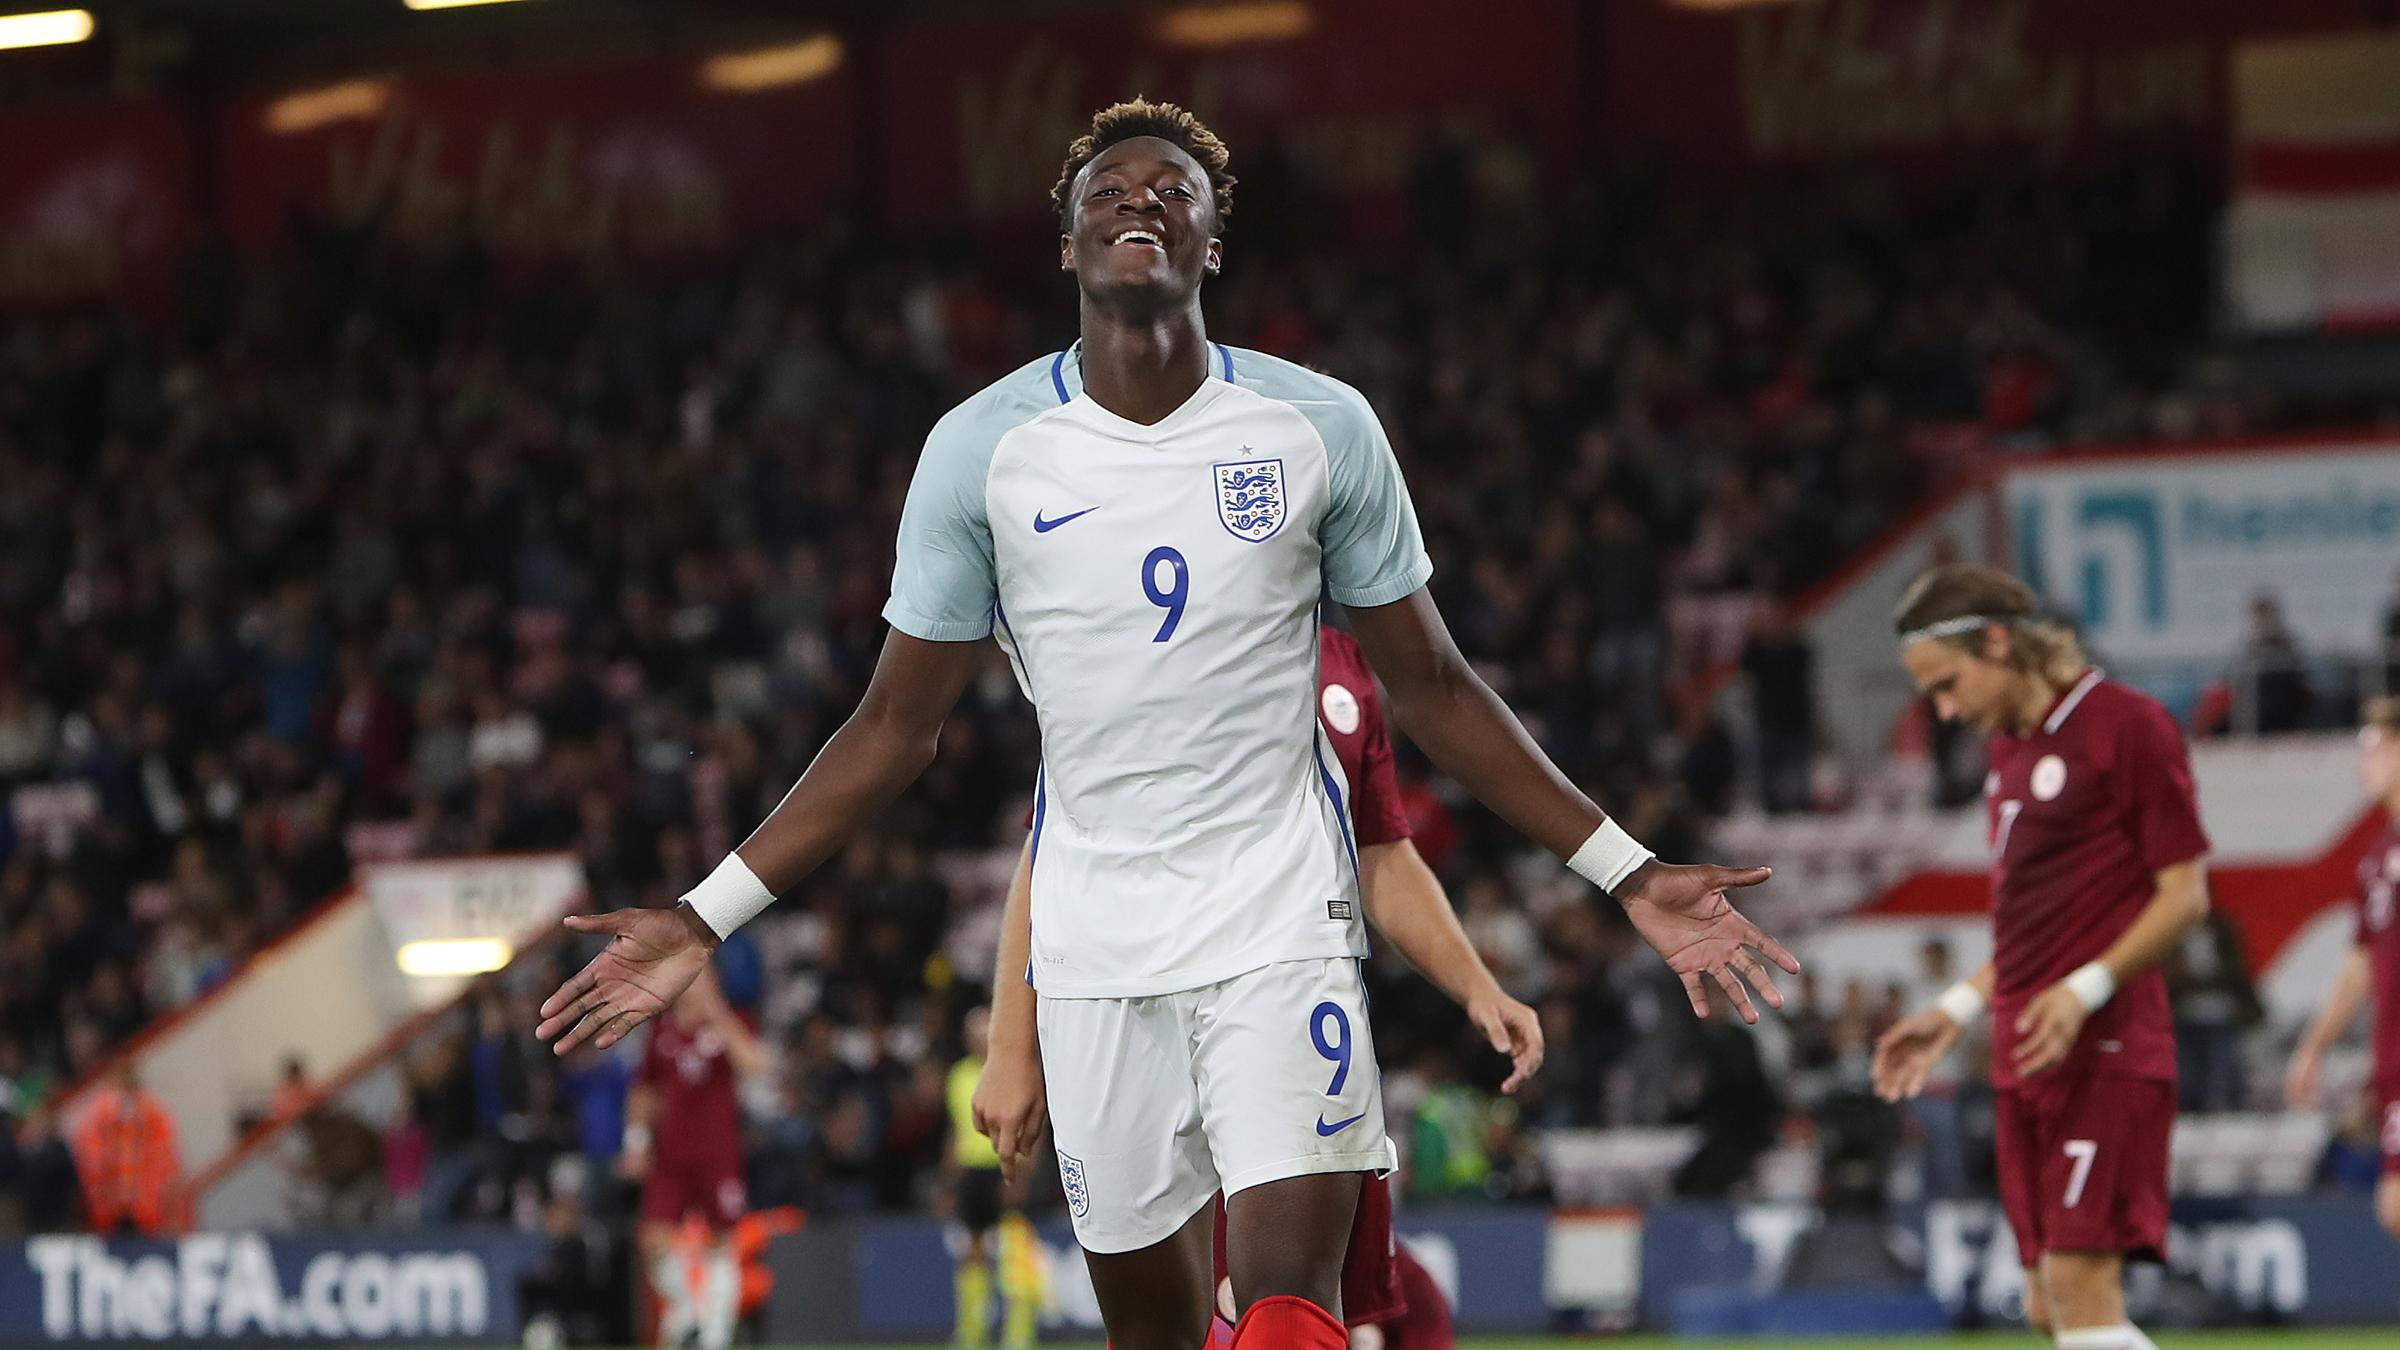 Tammy Abraham gets his first England National team call-up